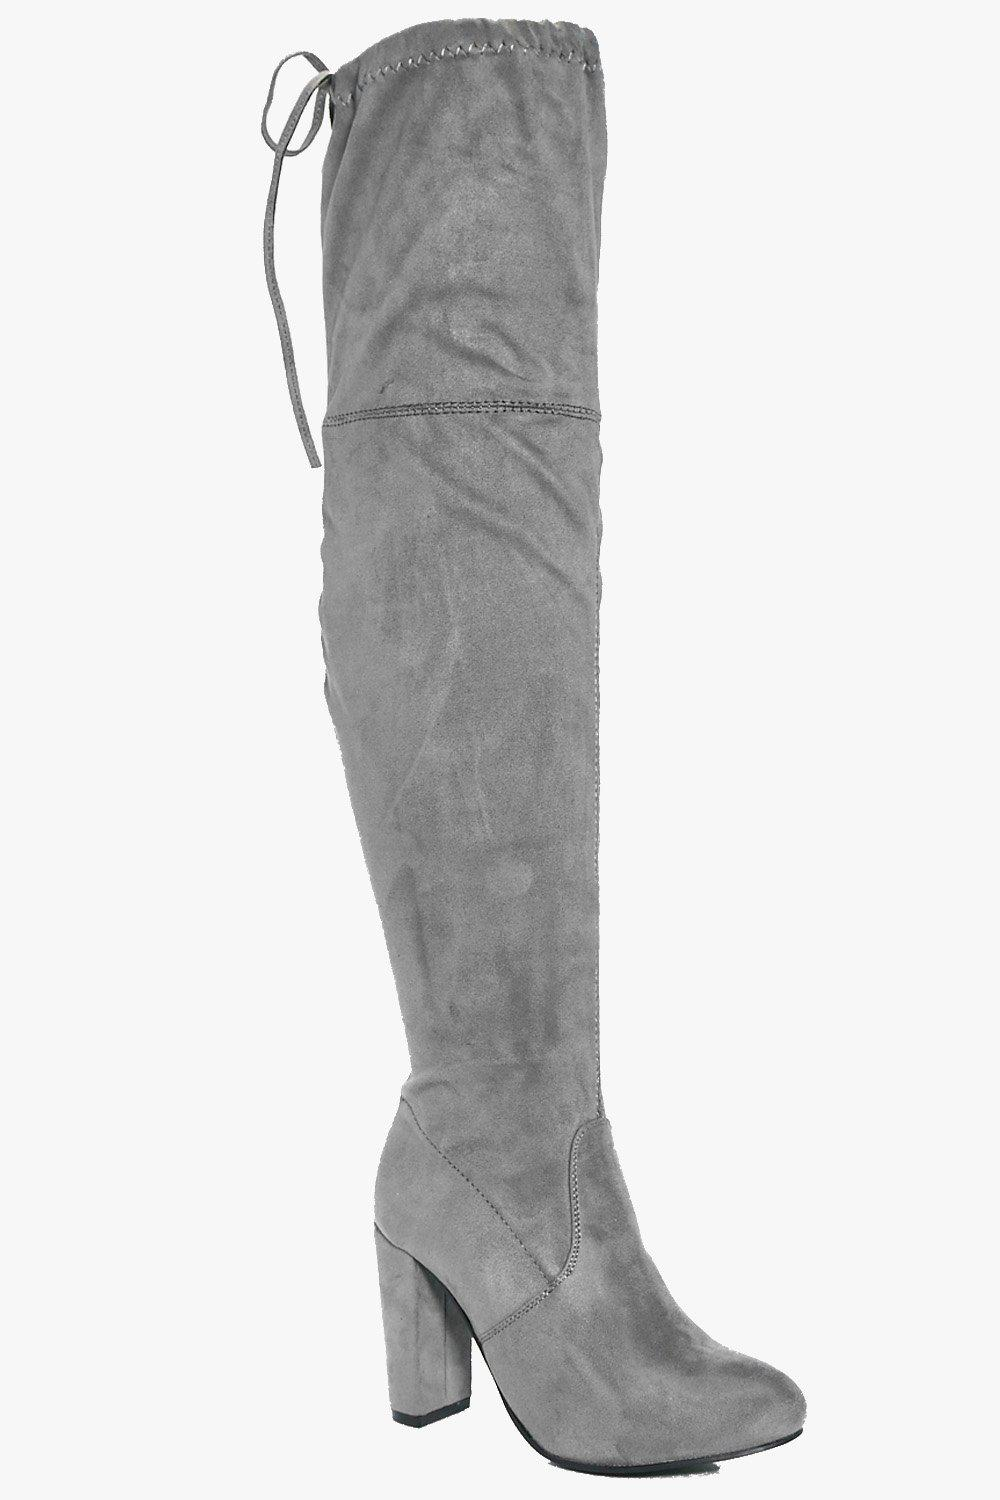 632704fecffc Block Heel Lace Up Back Thigh High Boots